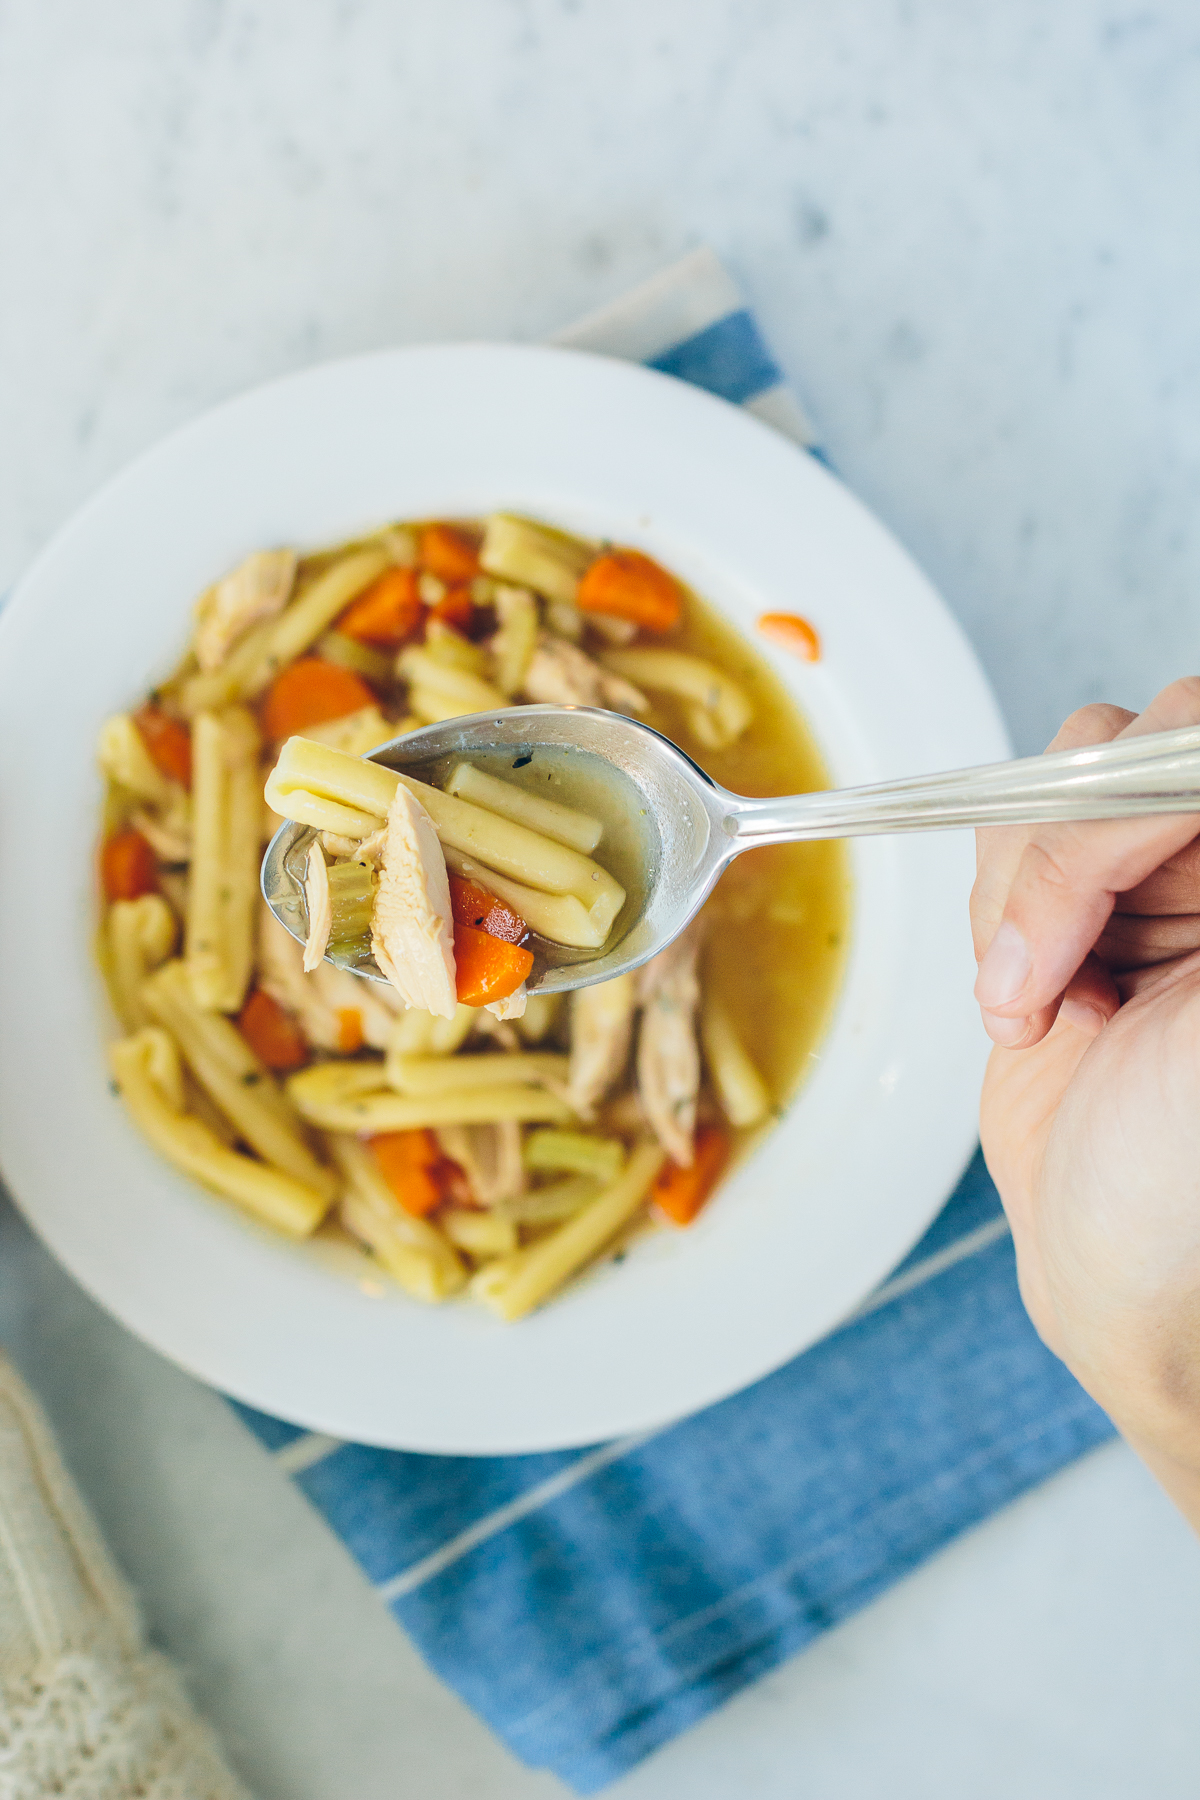 homemade chicken noodle soup, stay healthy during winter —via @TheFoxandShe